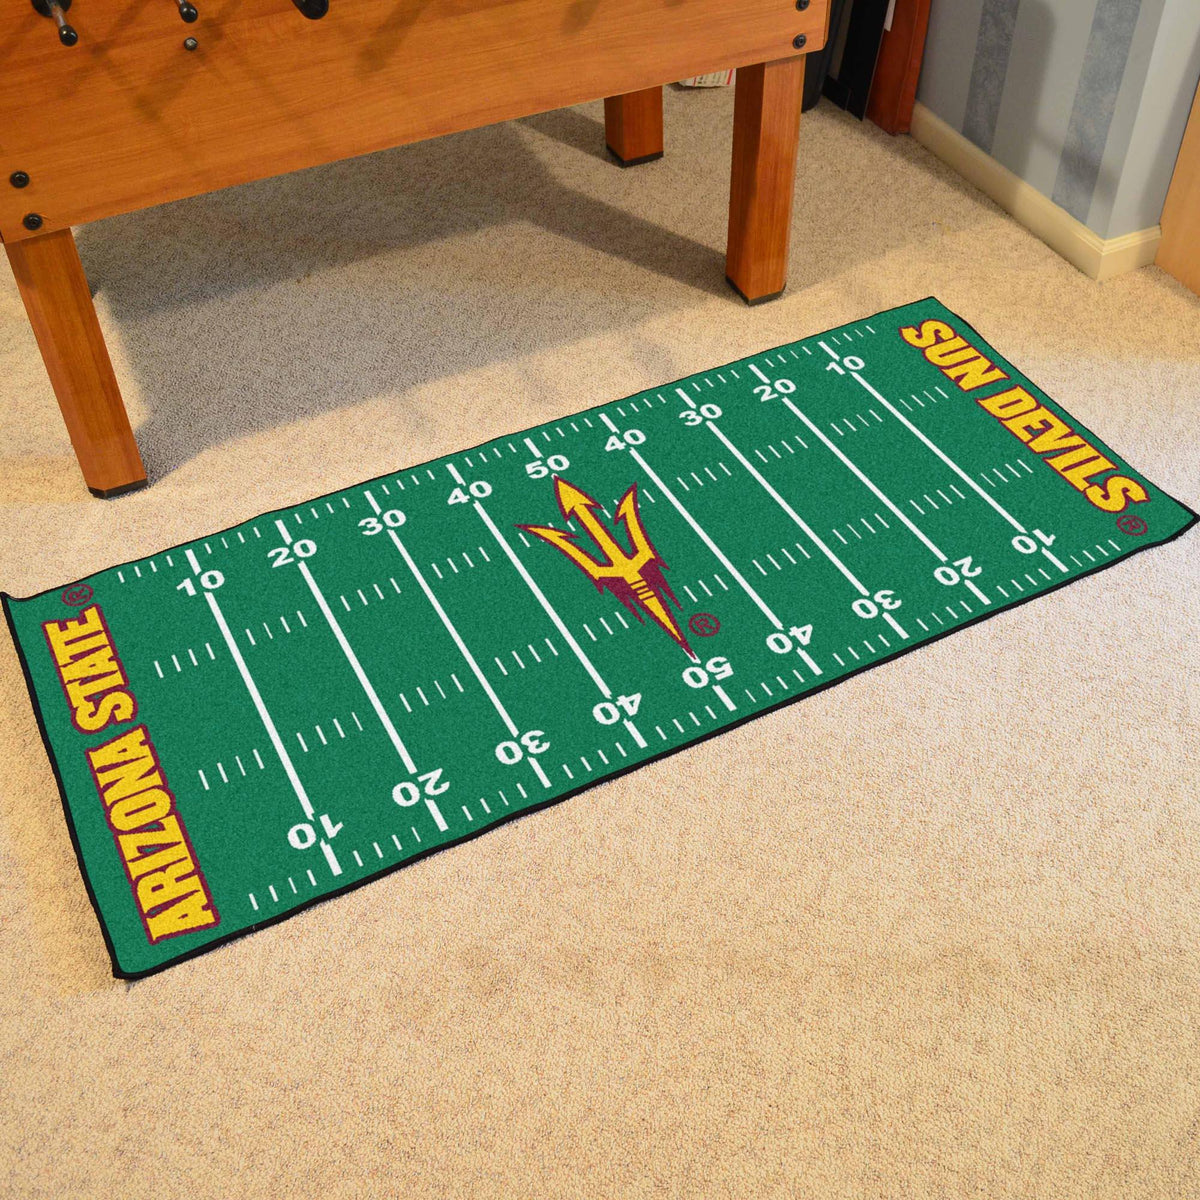 Collegiate - Football Field Runner Collegiate Mats, Rectangular Mats, Football Field Runner, Collegiate, Home Fan Mats Arizona State